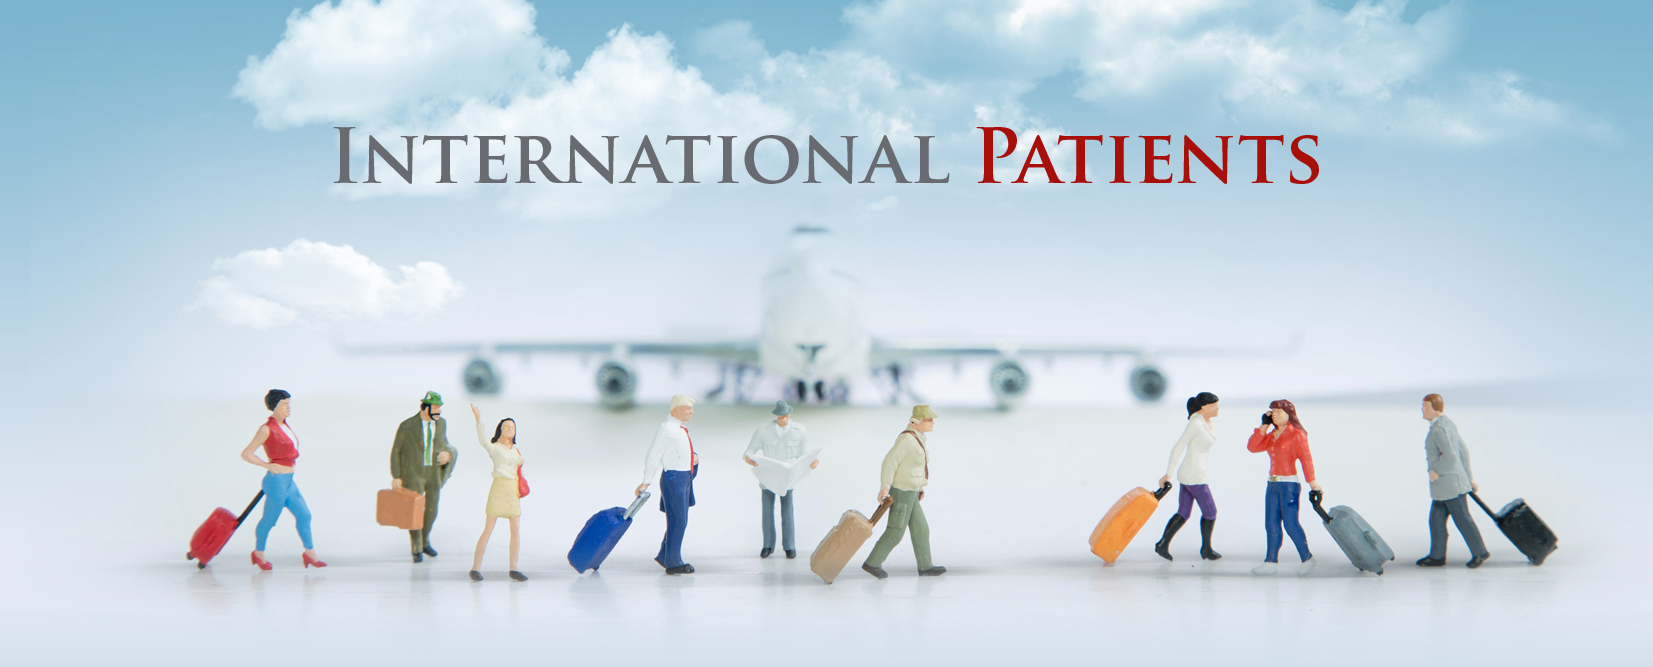 International patients